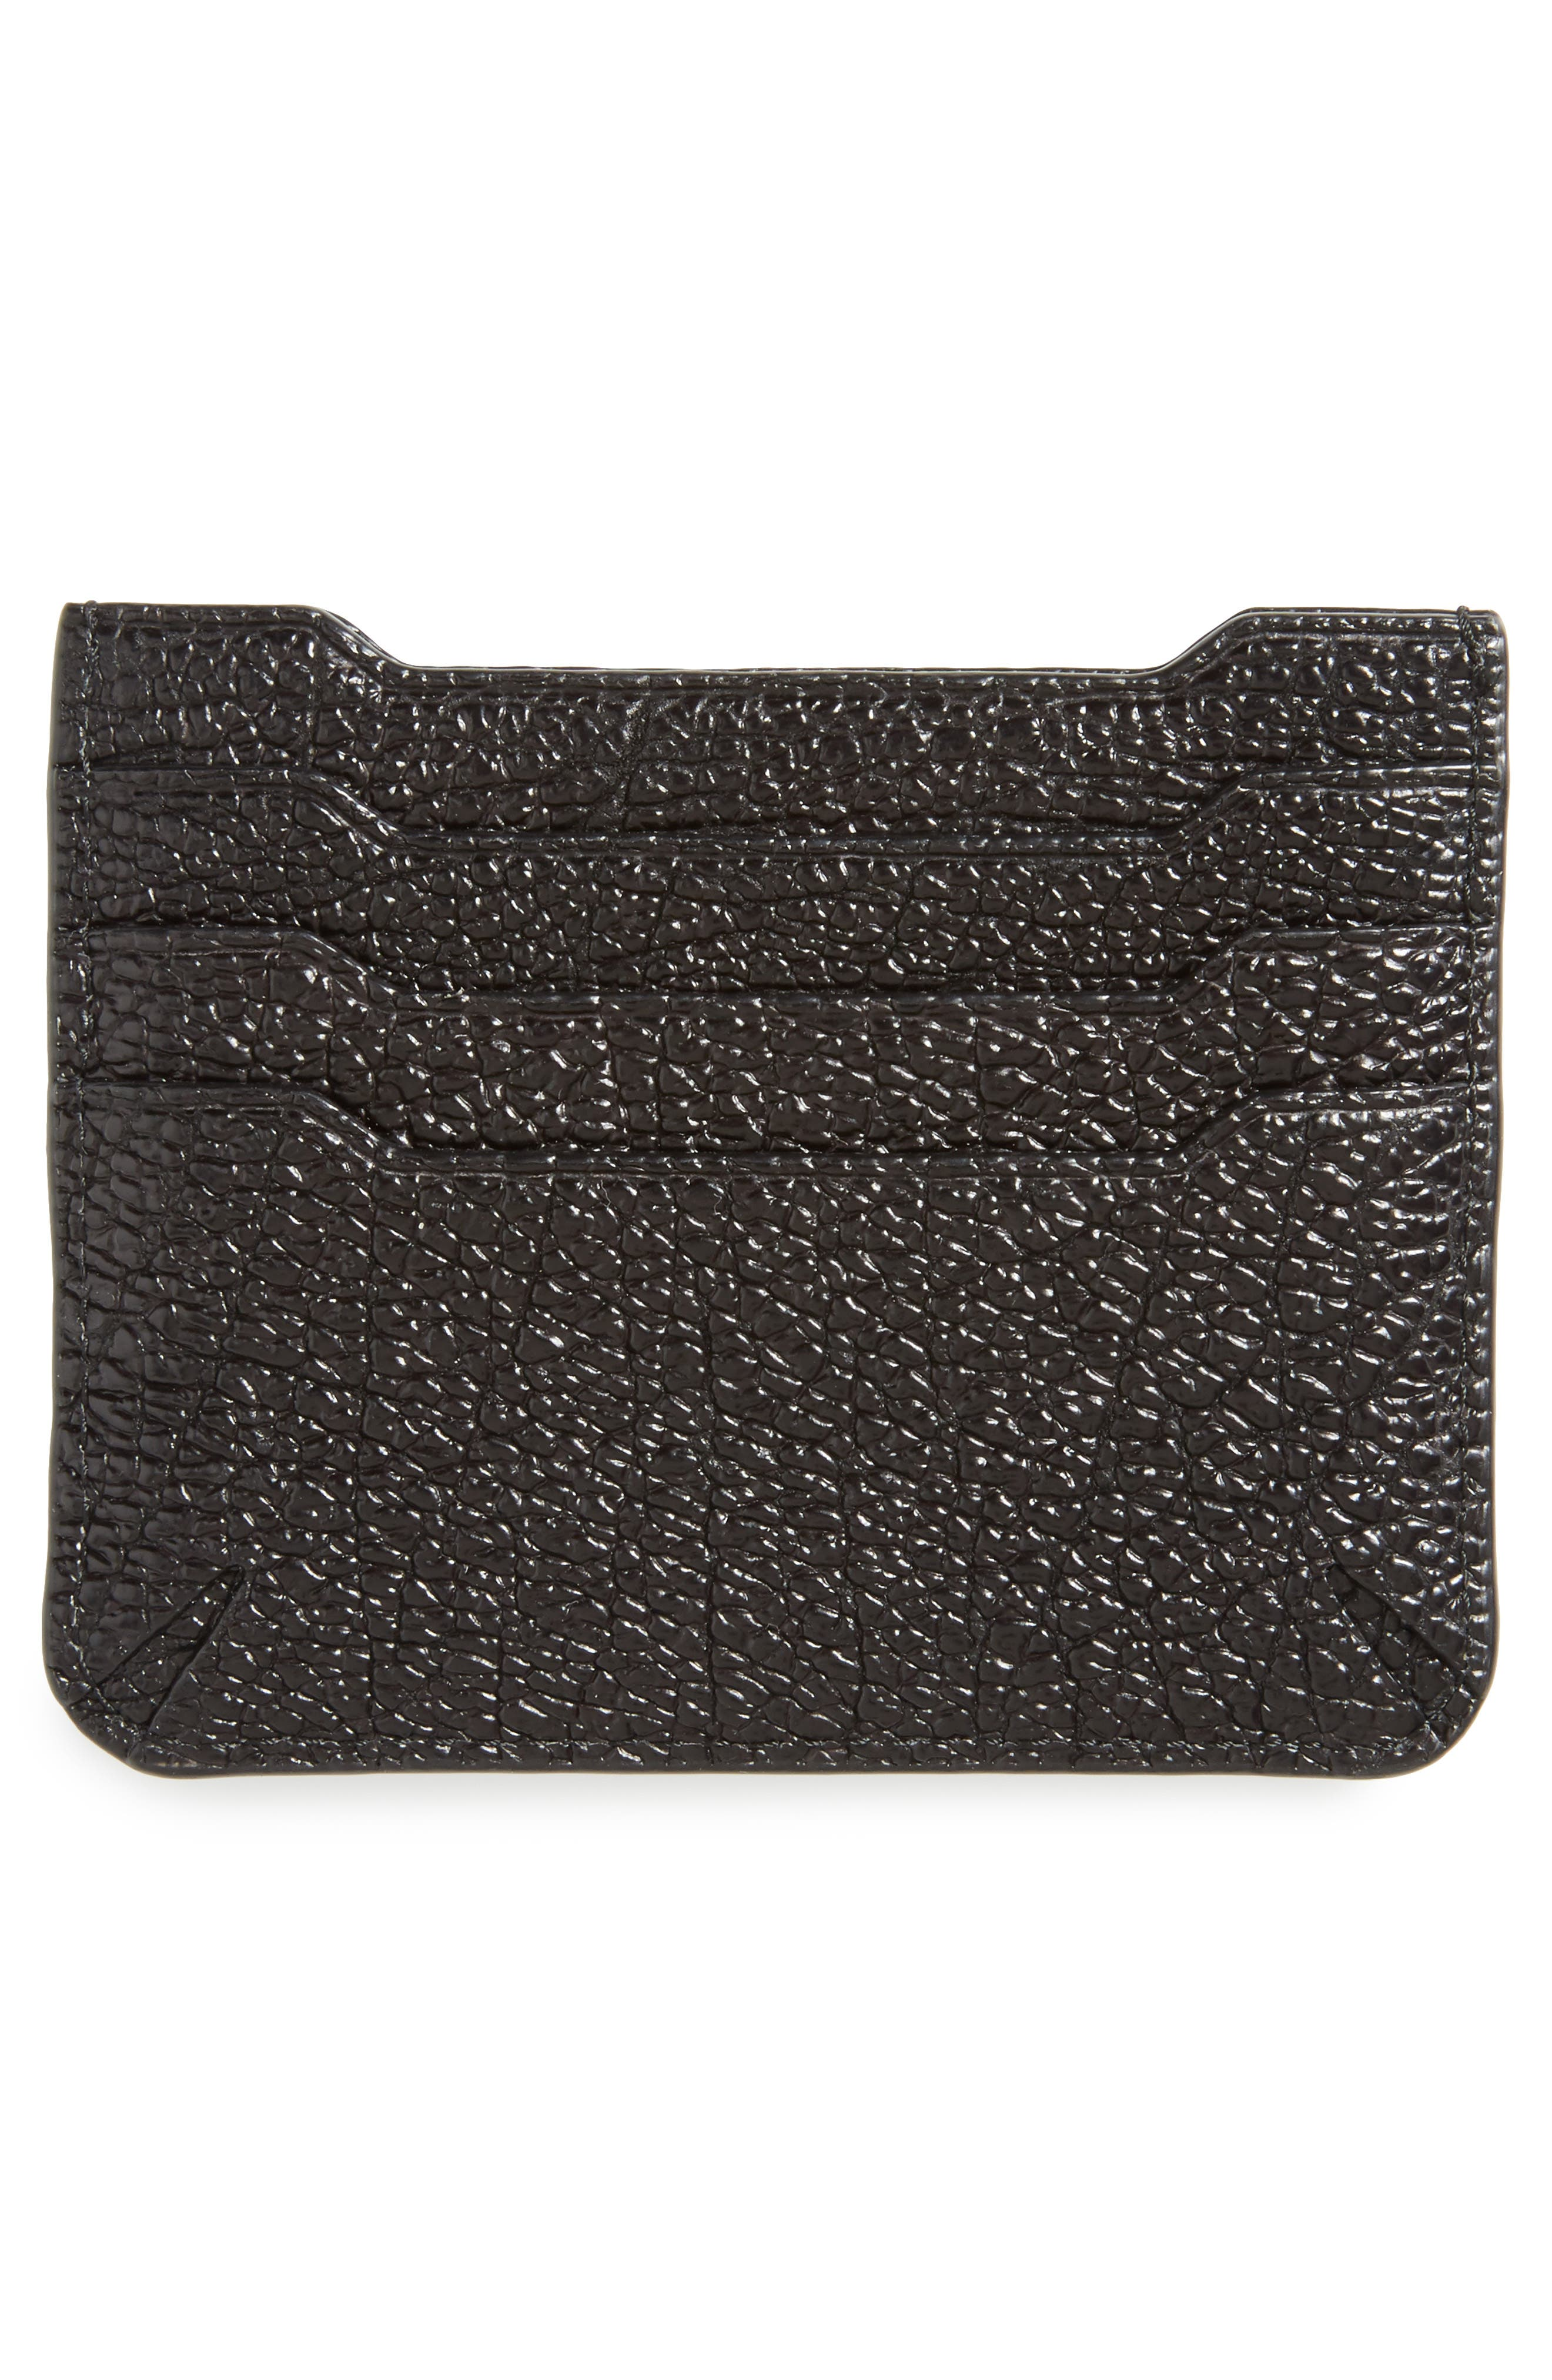 'Crosby' Crackle Leather Card Case,                             Alternate thumbnail 3, color,